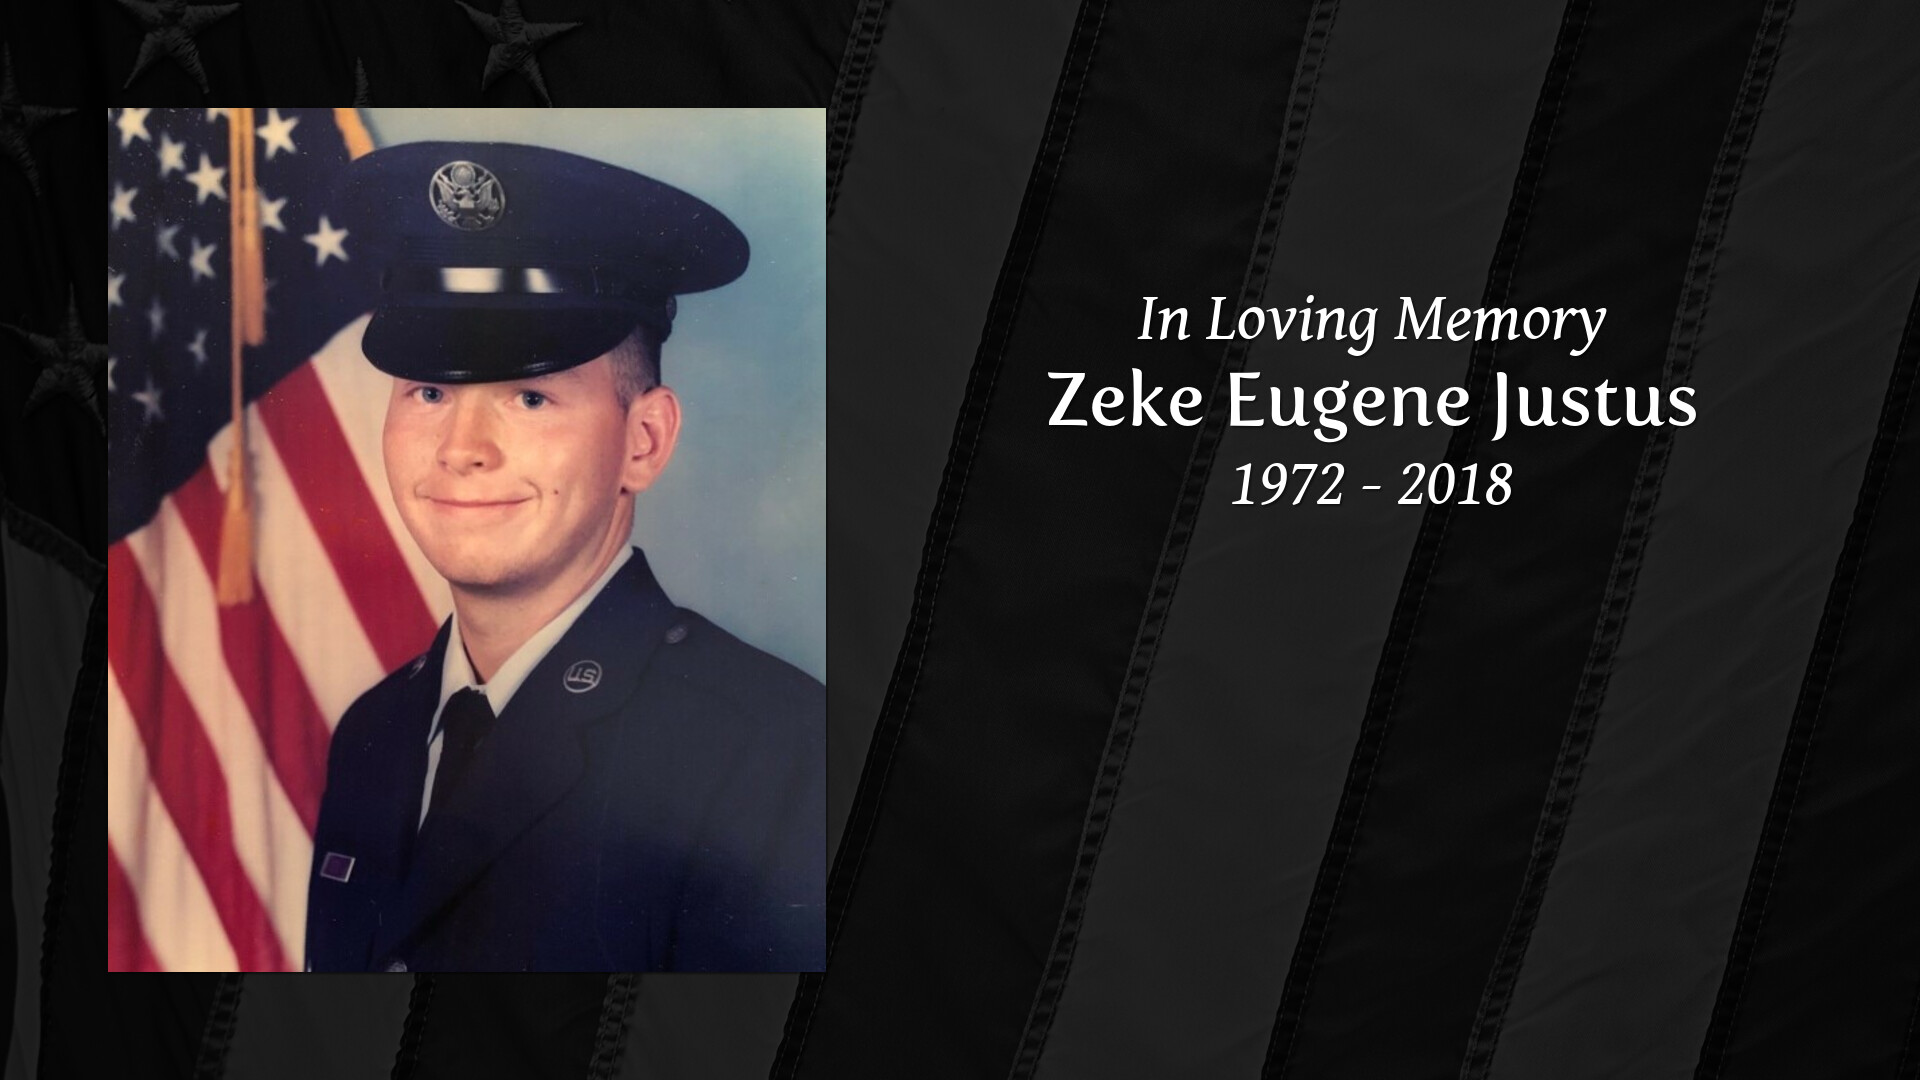 Obituary for Zeke Eugene Justus